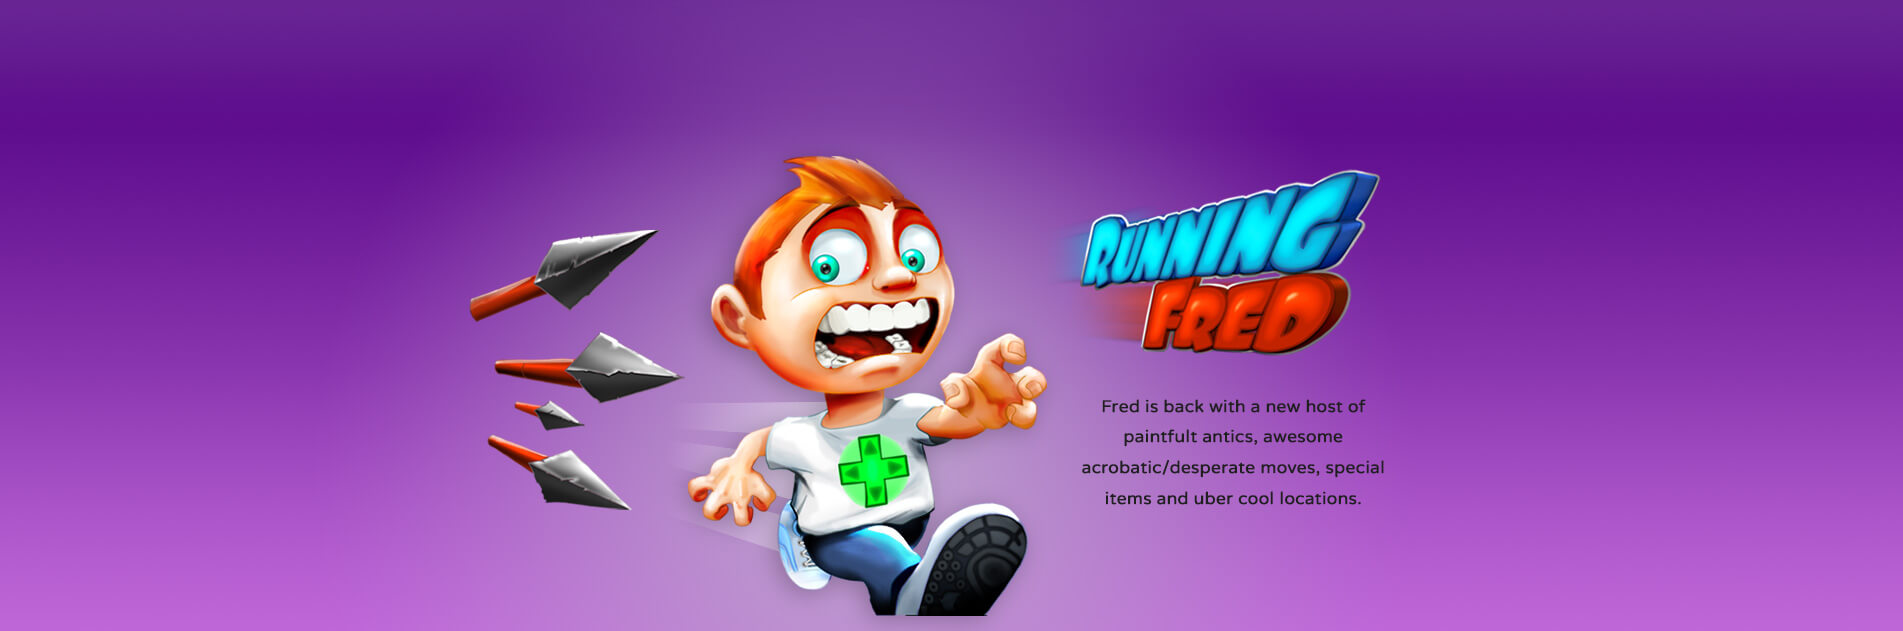 Running fred online game dedalord click for details running fred